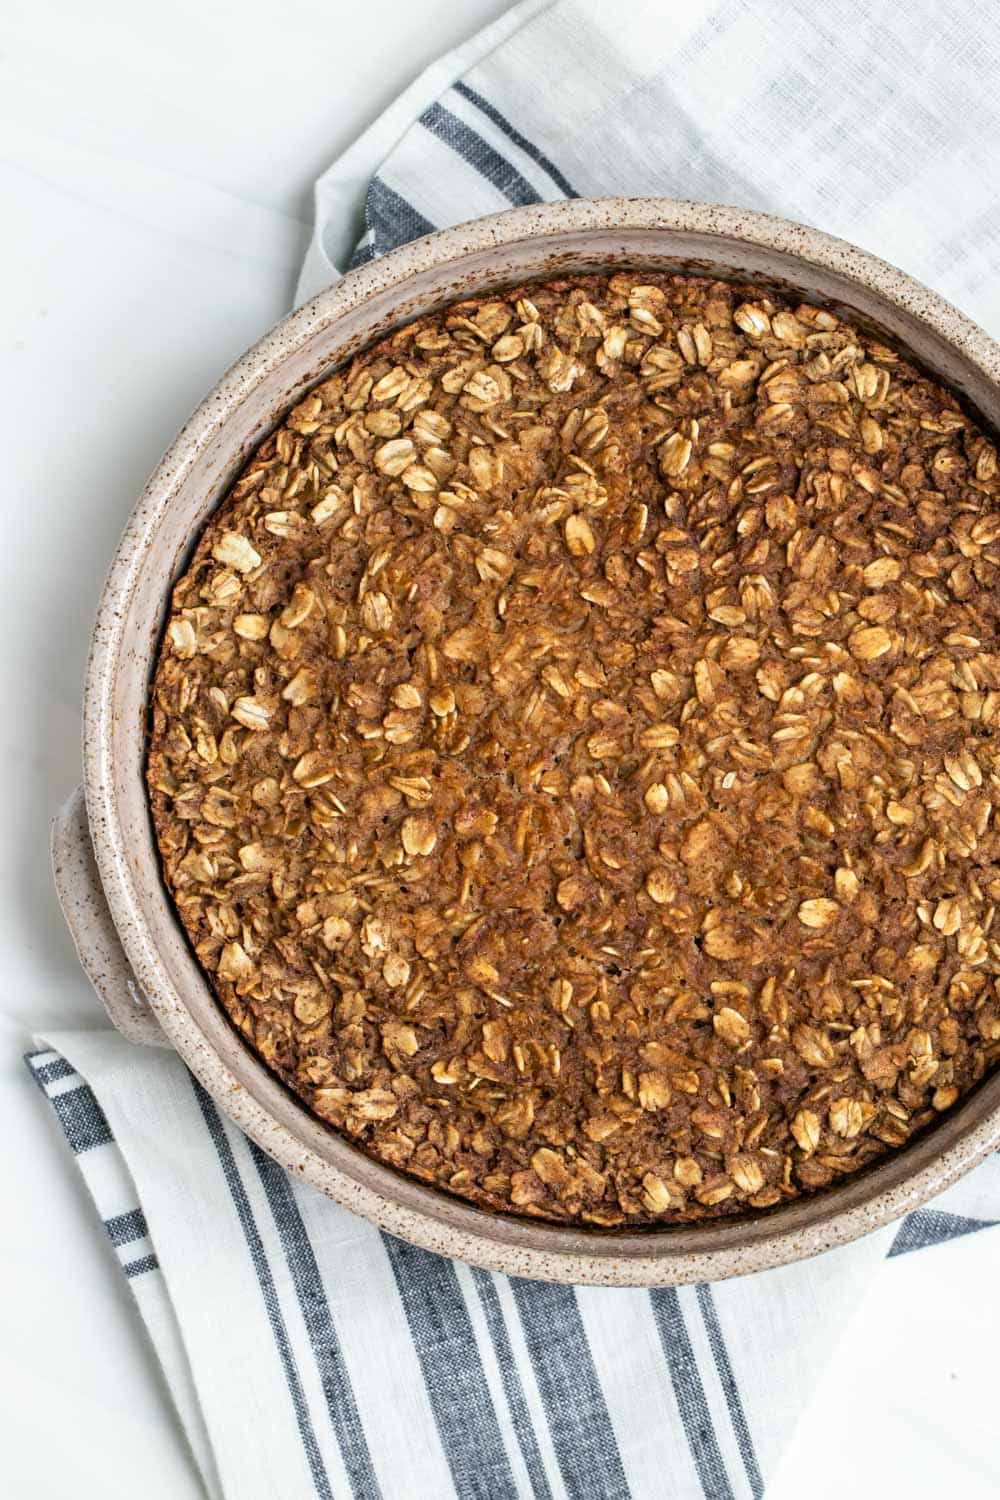 Baked oatmeal fresh from the oven.